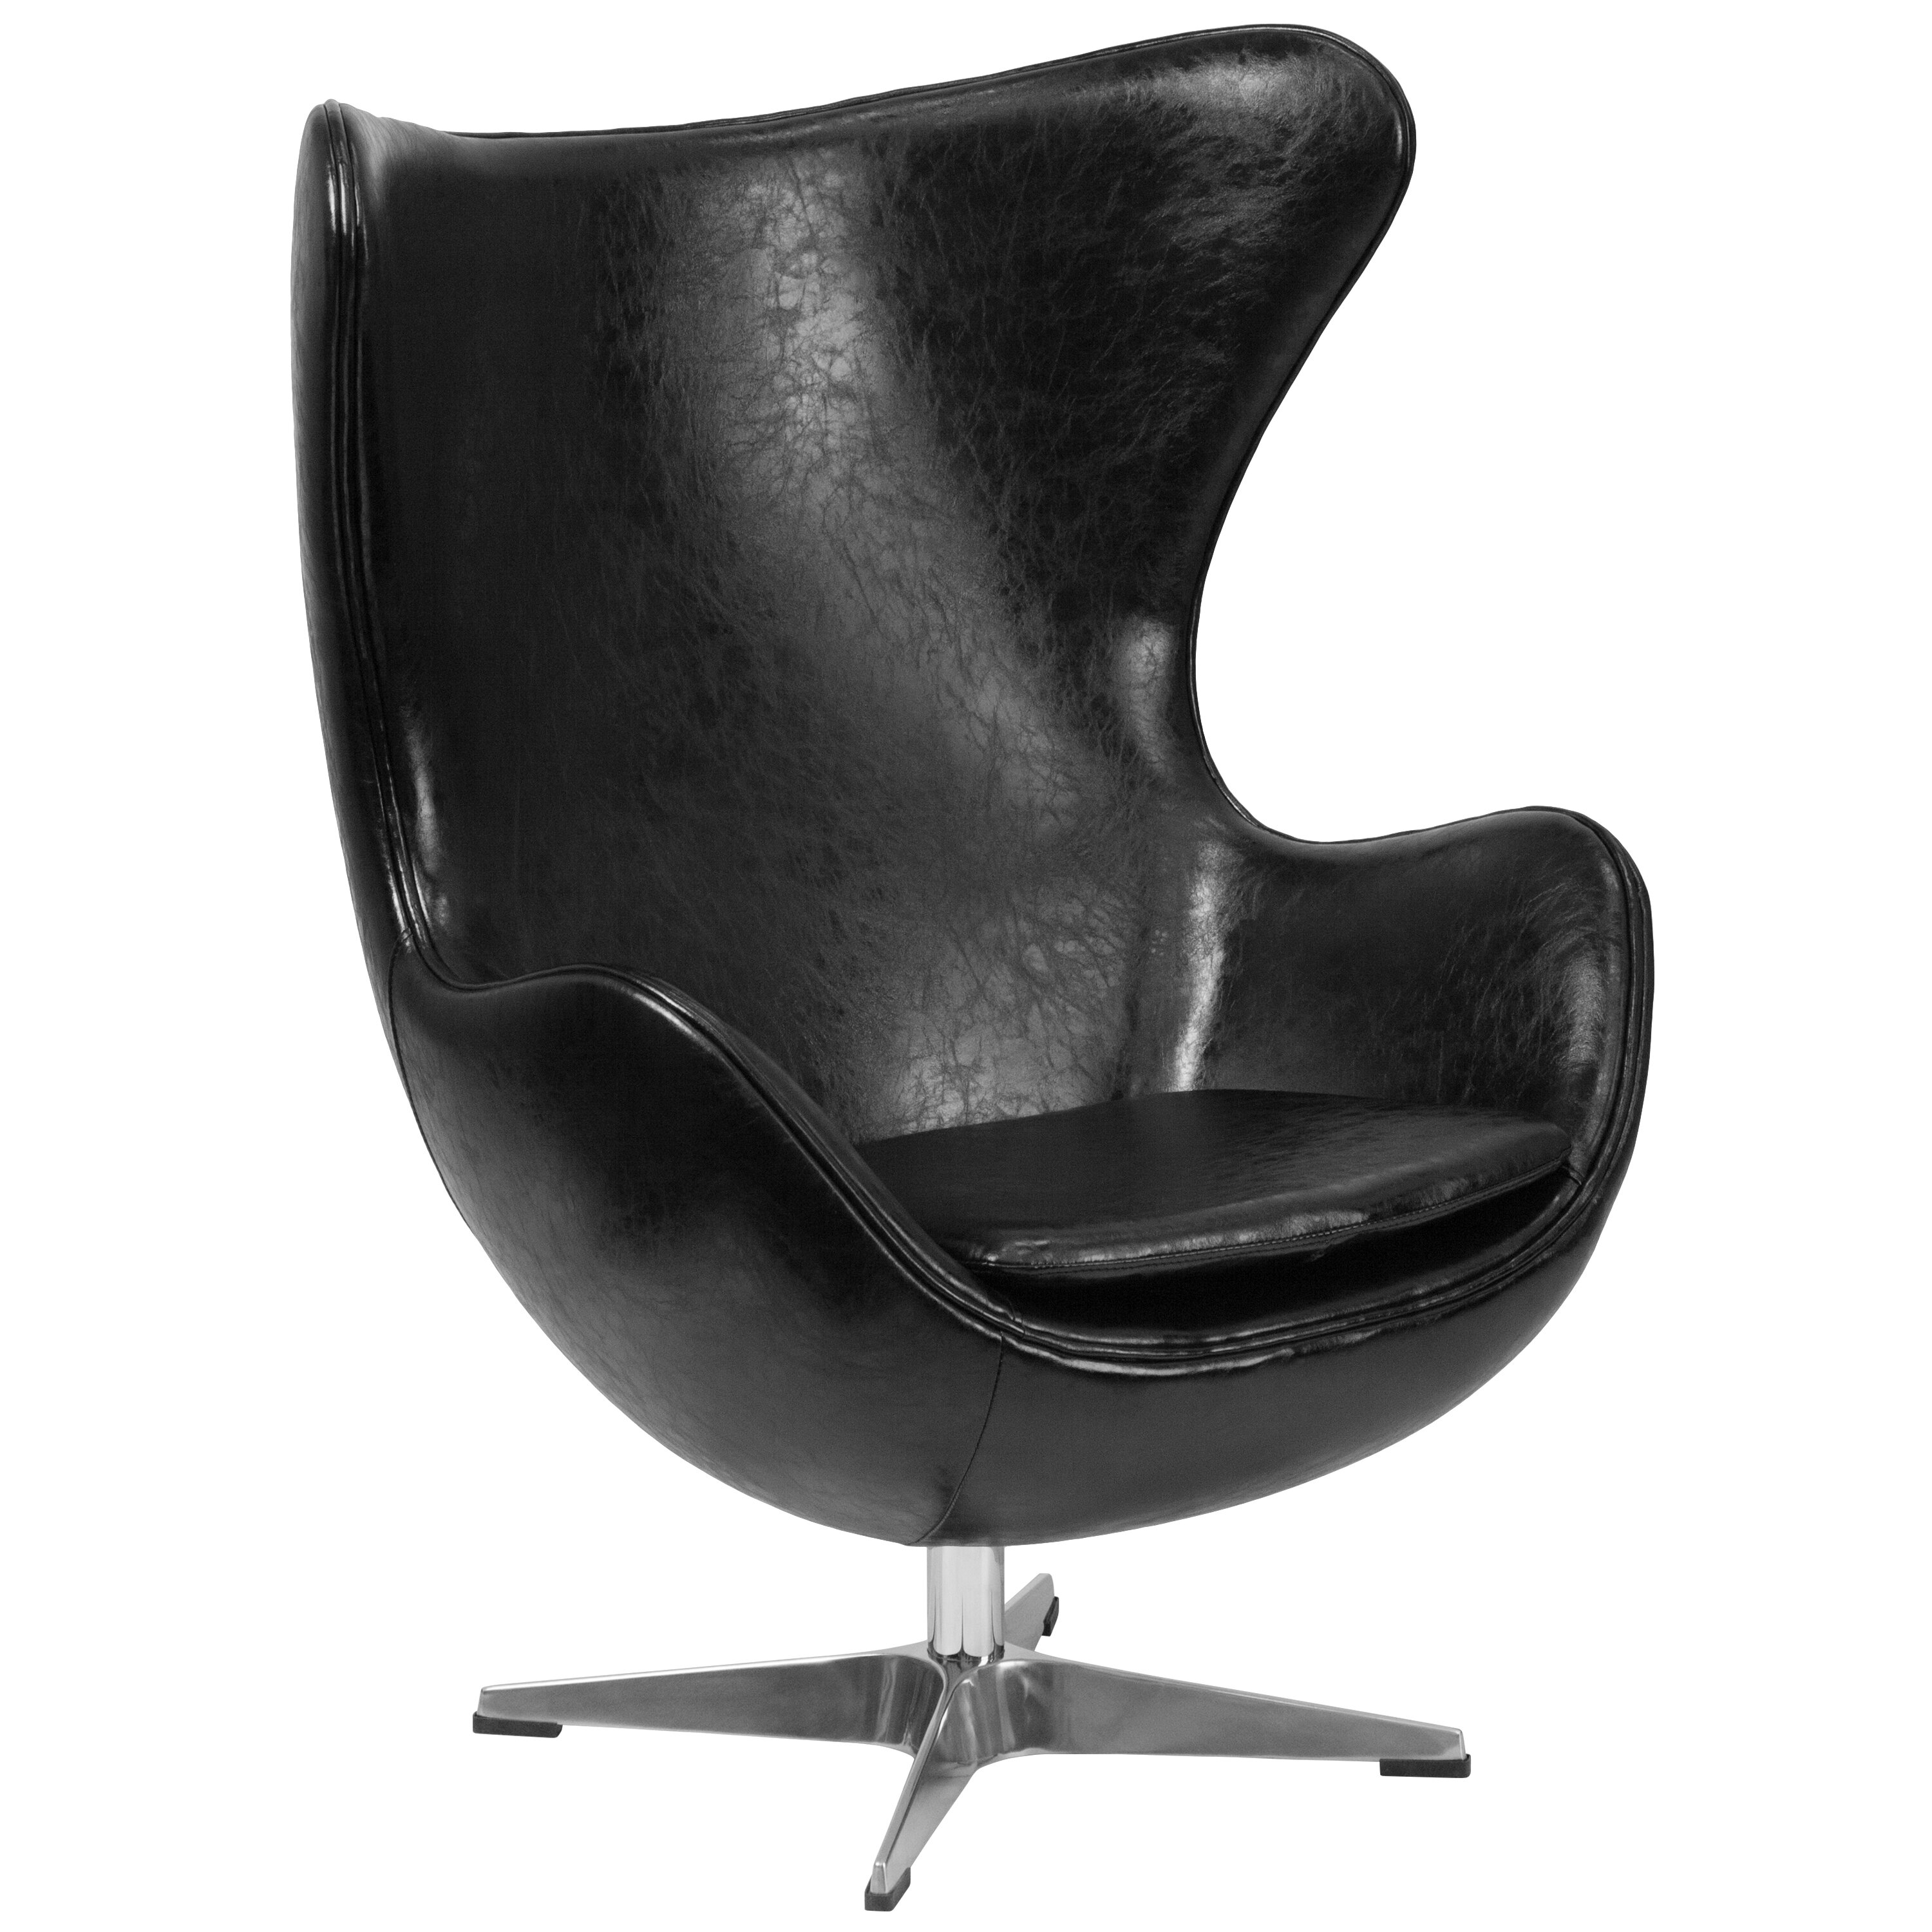 leather egg chair wade logan leather tilt lock mechanism lounge chair 16624 | Leather Egg Chair WADL5502